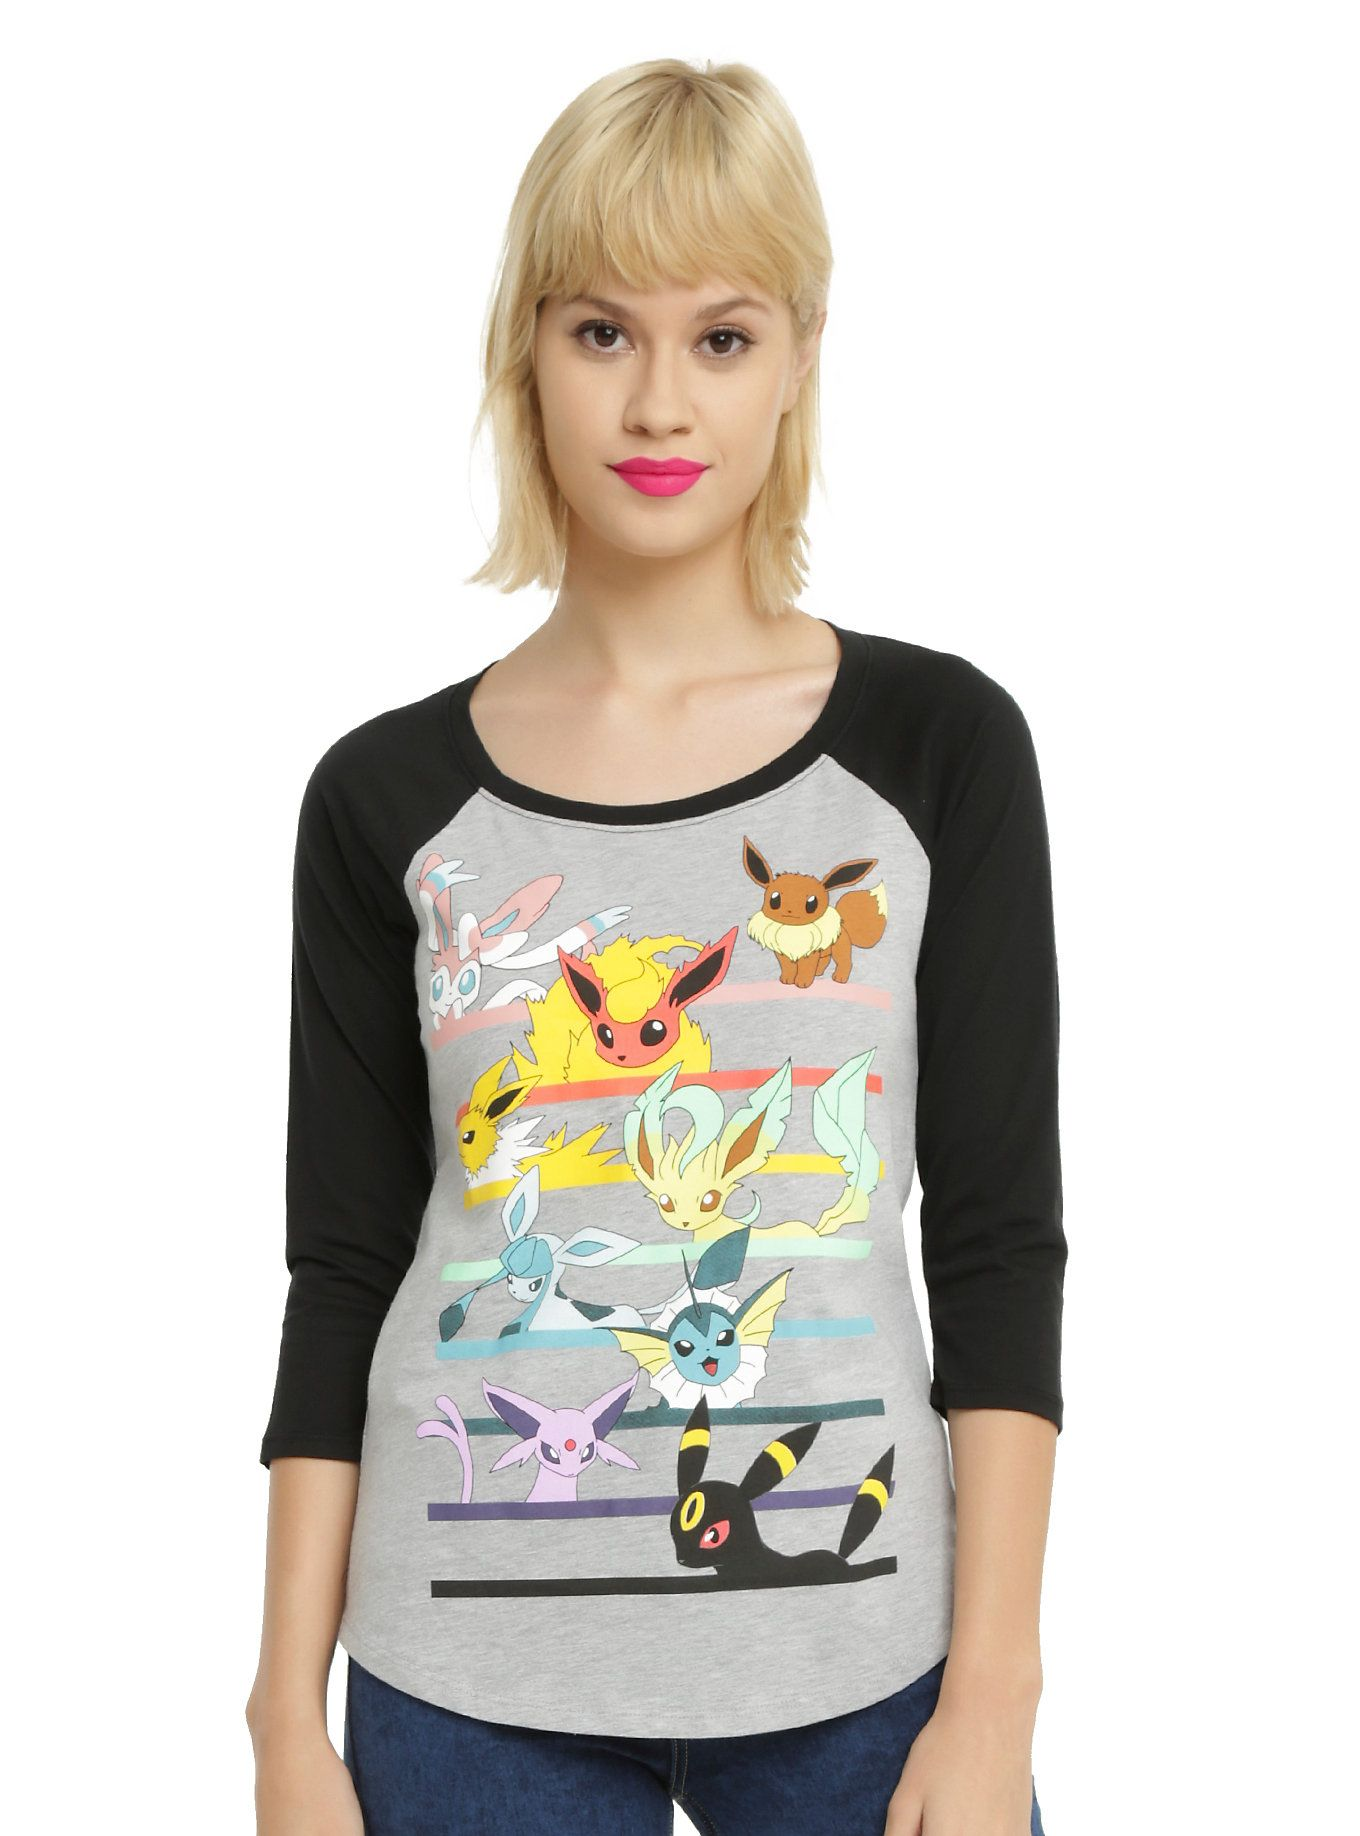 ea94d81b Pokemon Eevee Evolution Characters Girls Raglan | Hot Topic Pokemon Craft,  Pokemon Plush, My